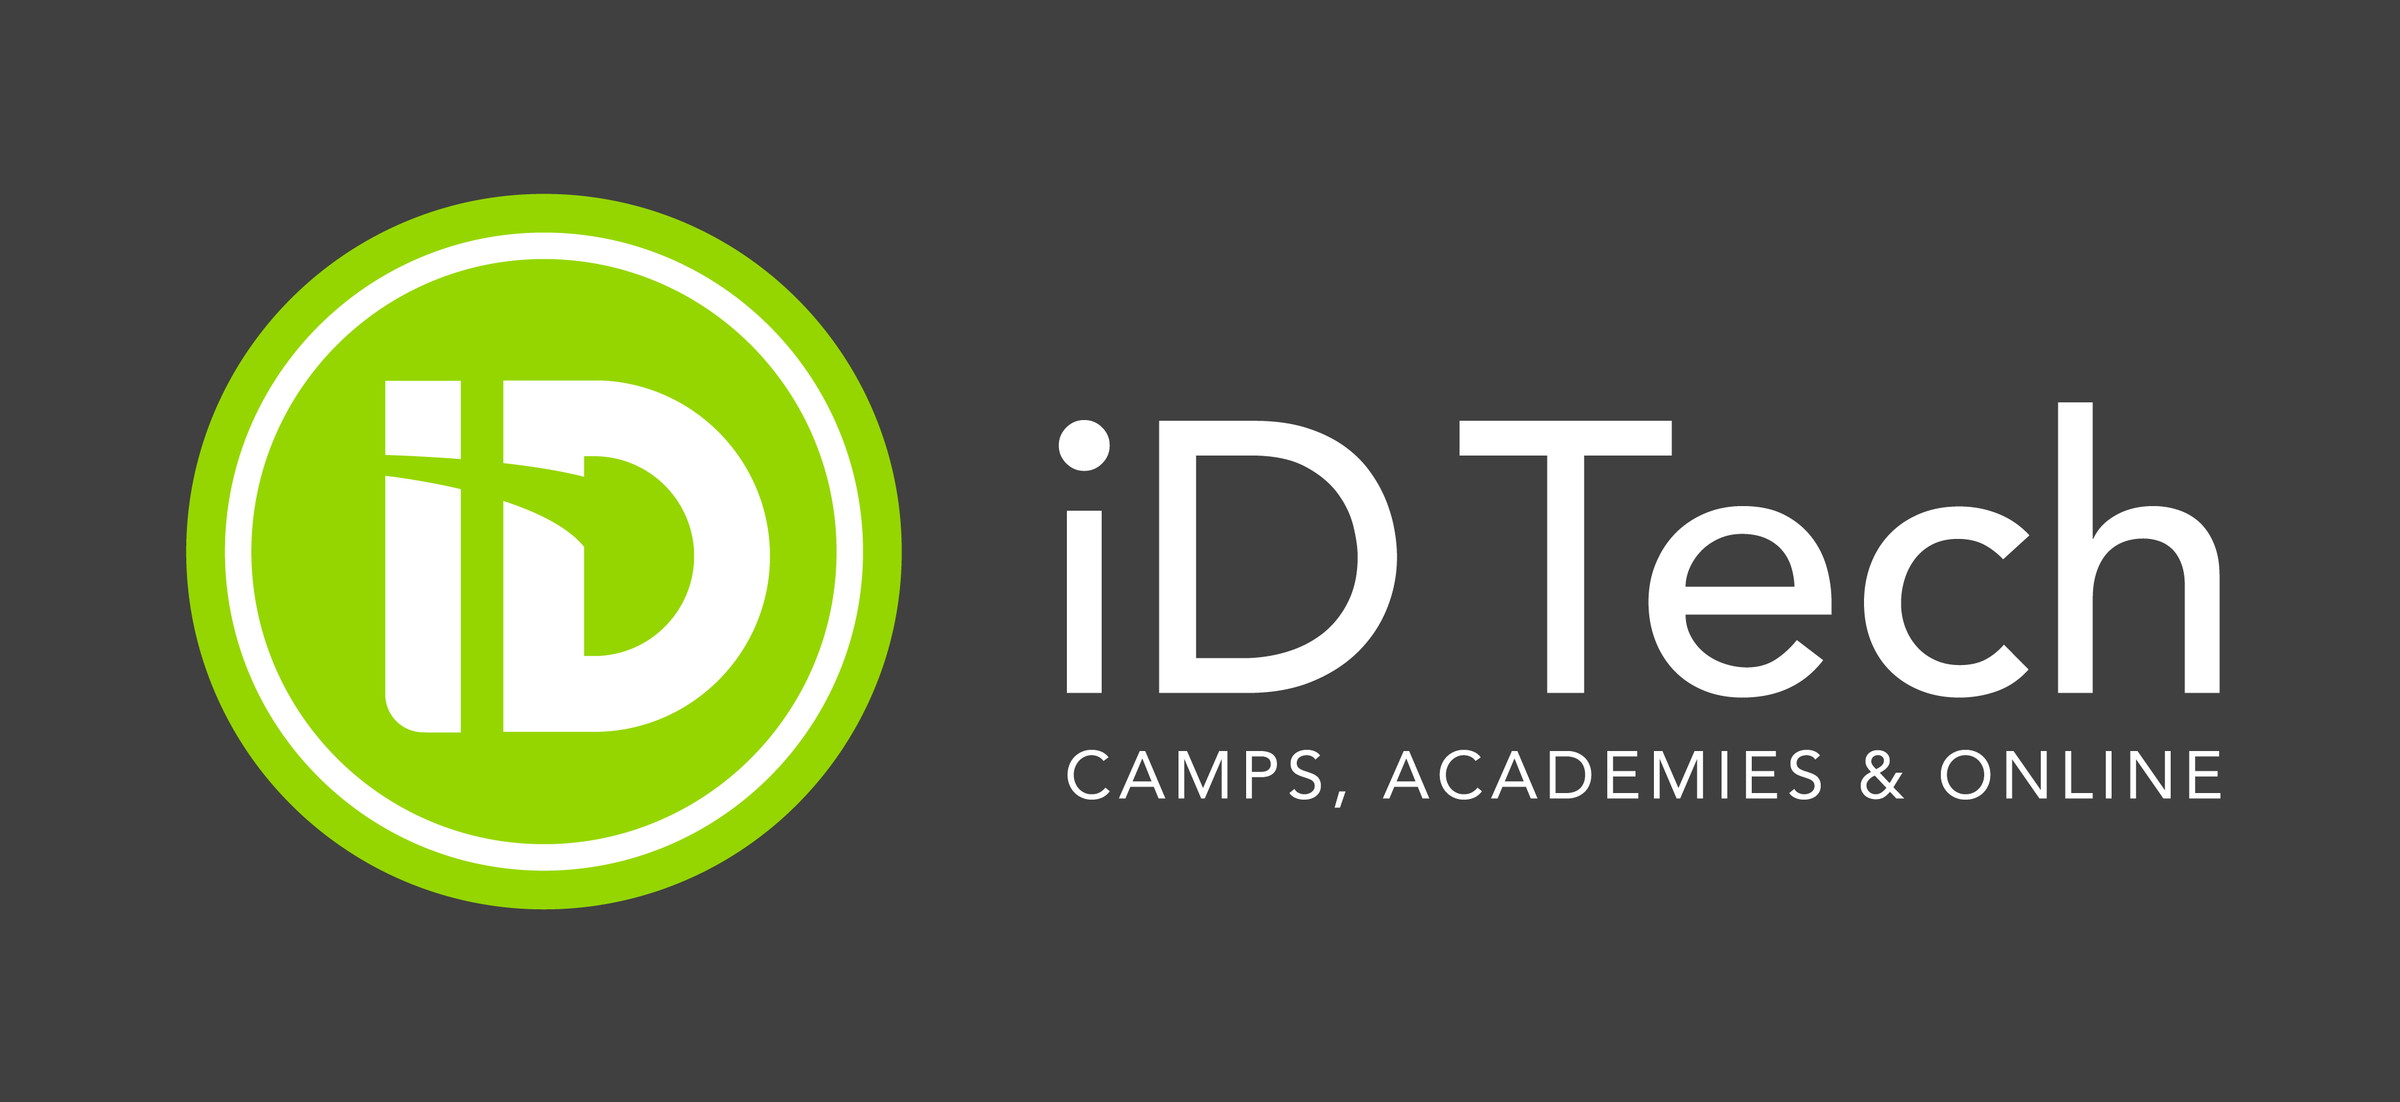 iD Tech Camps: #1 in STEM Education - Held at Seton Hall University